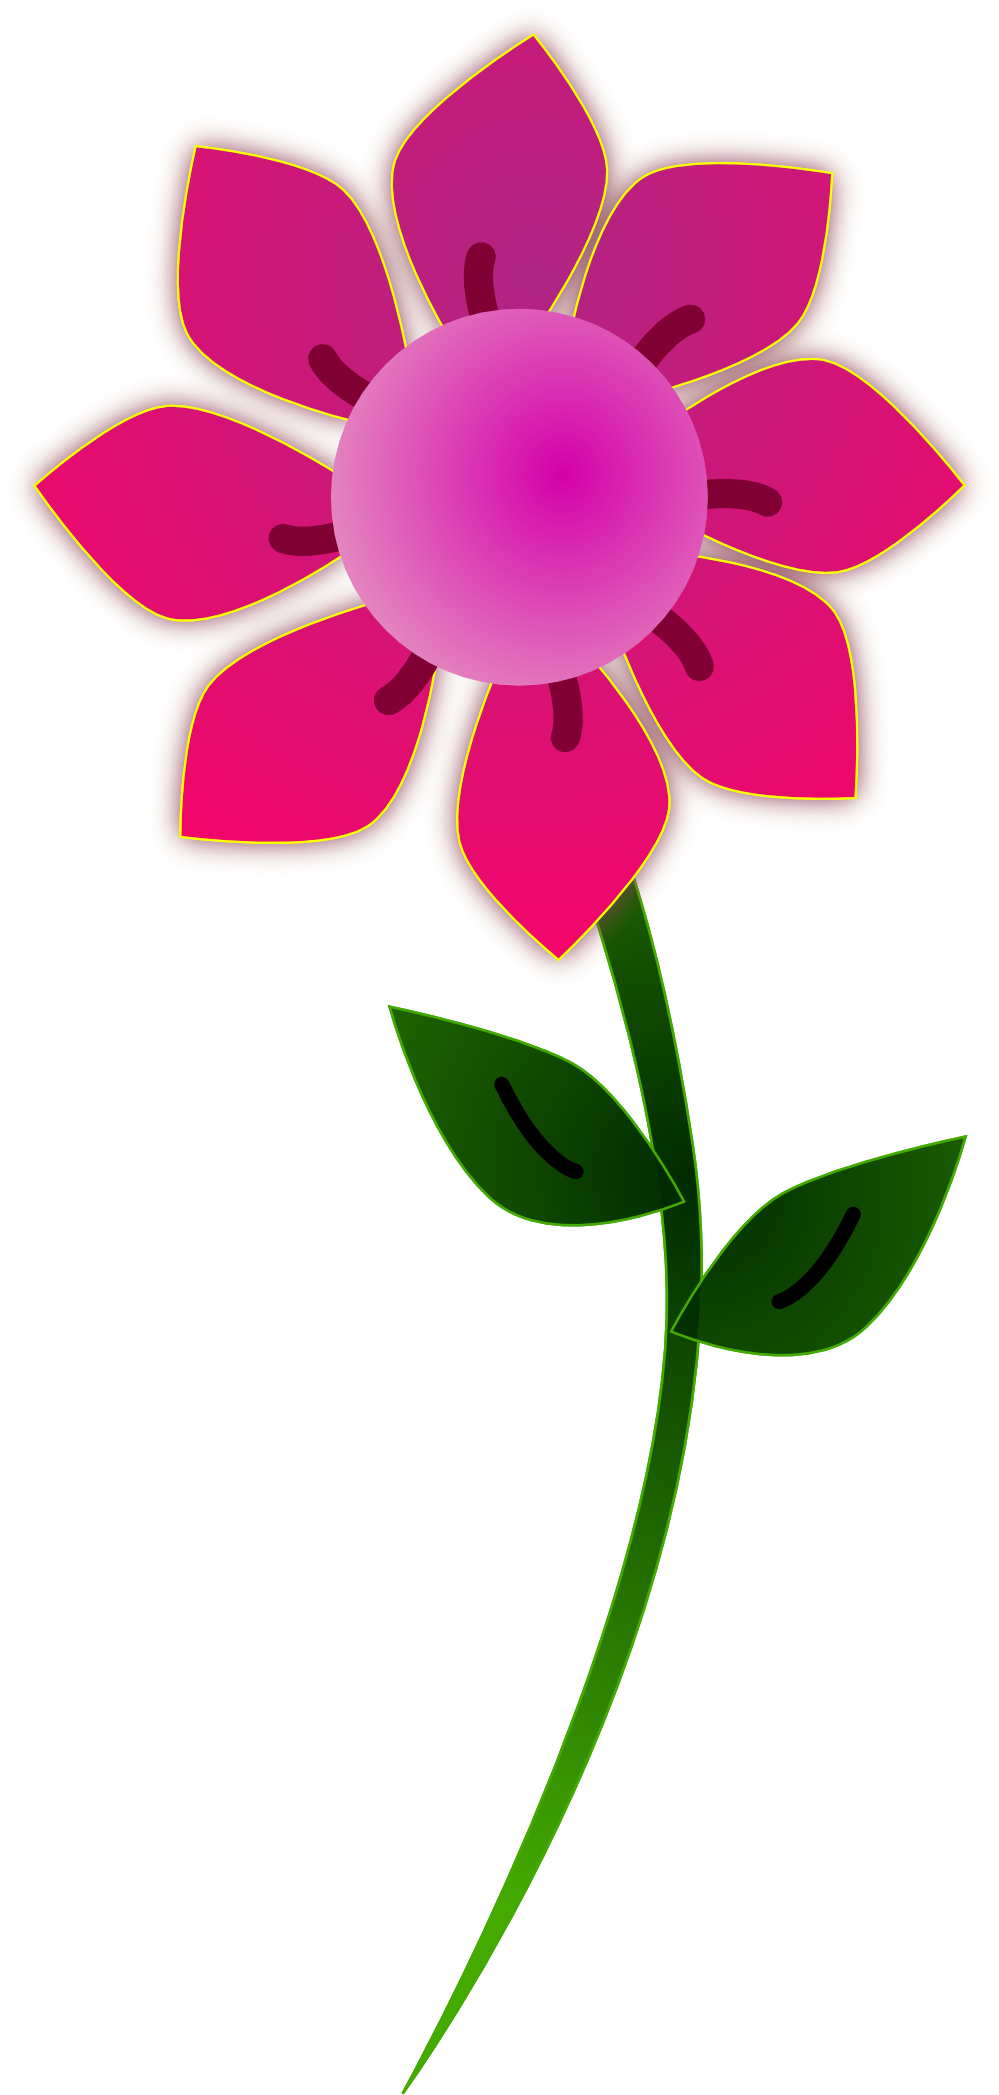 Sunflower Clip Art Free Printable  Free Clipart Images